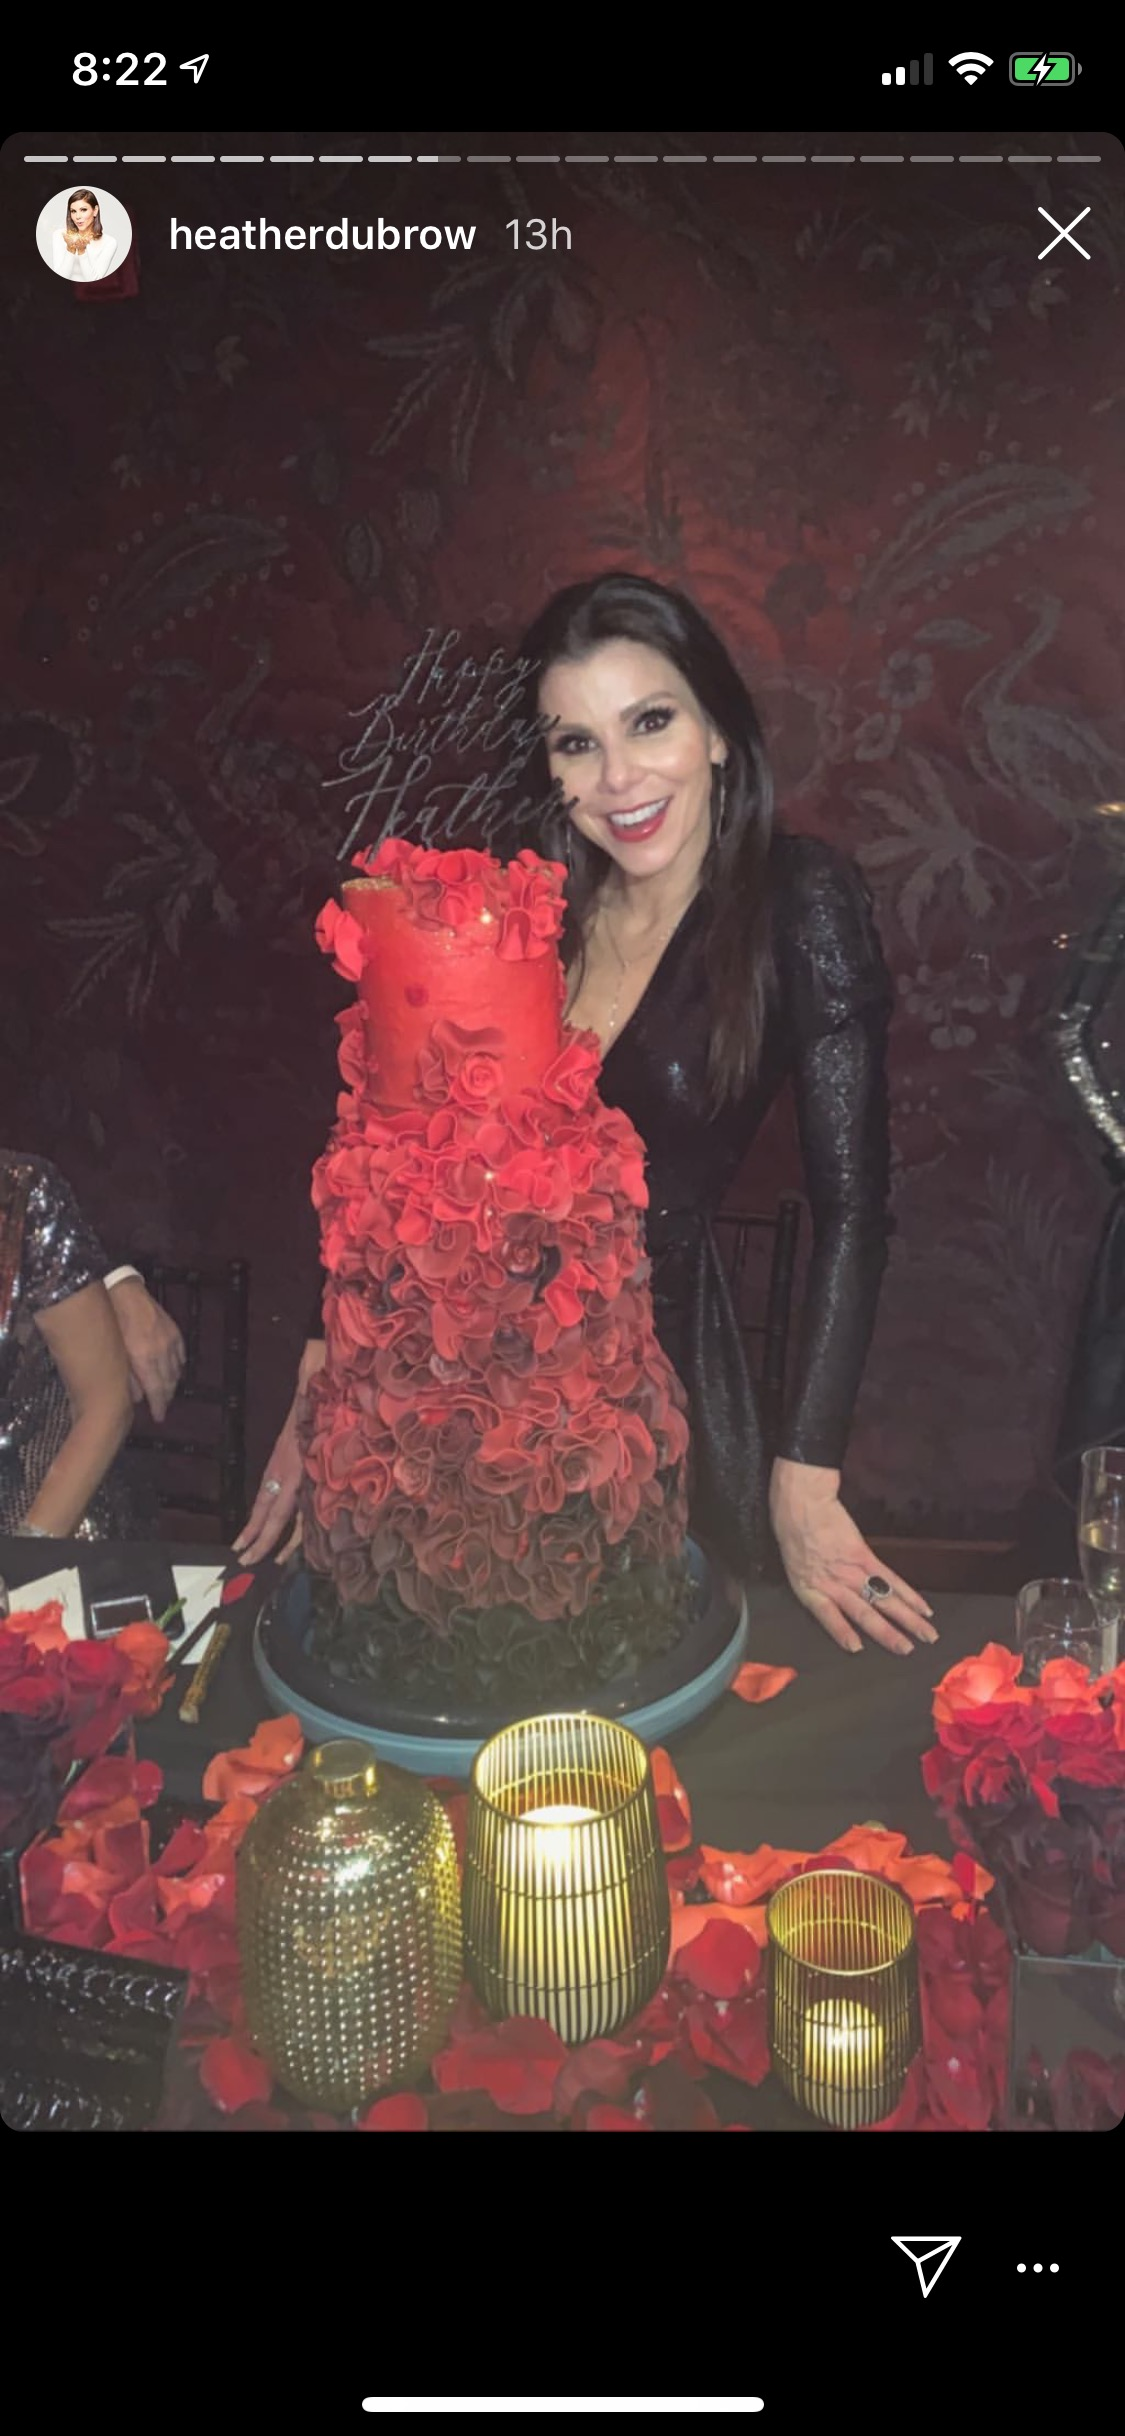 Next It Was Off To Tao LA Where Heather Got Her Over The Top Confection A Three Tiered Birthday Cake Decked In An Ombre Floral Design